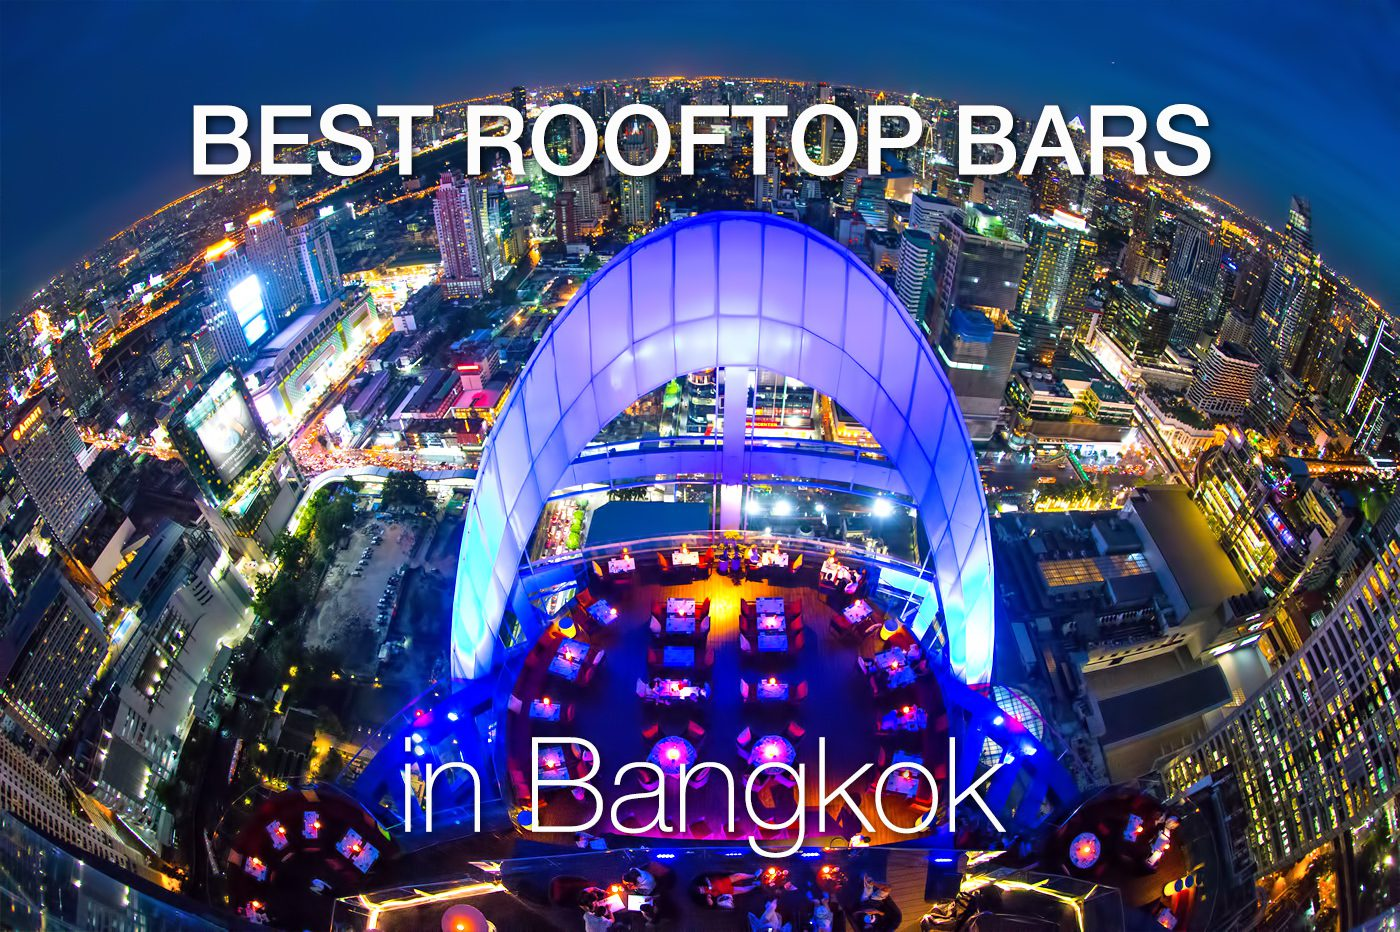 Bangkok Best Rooftop Bars